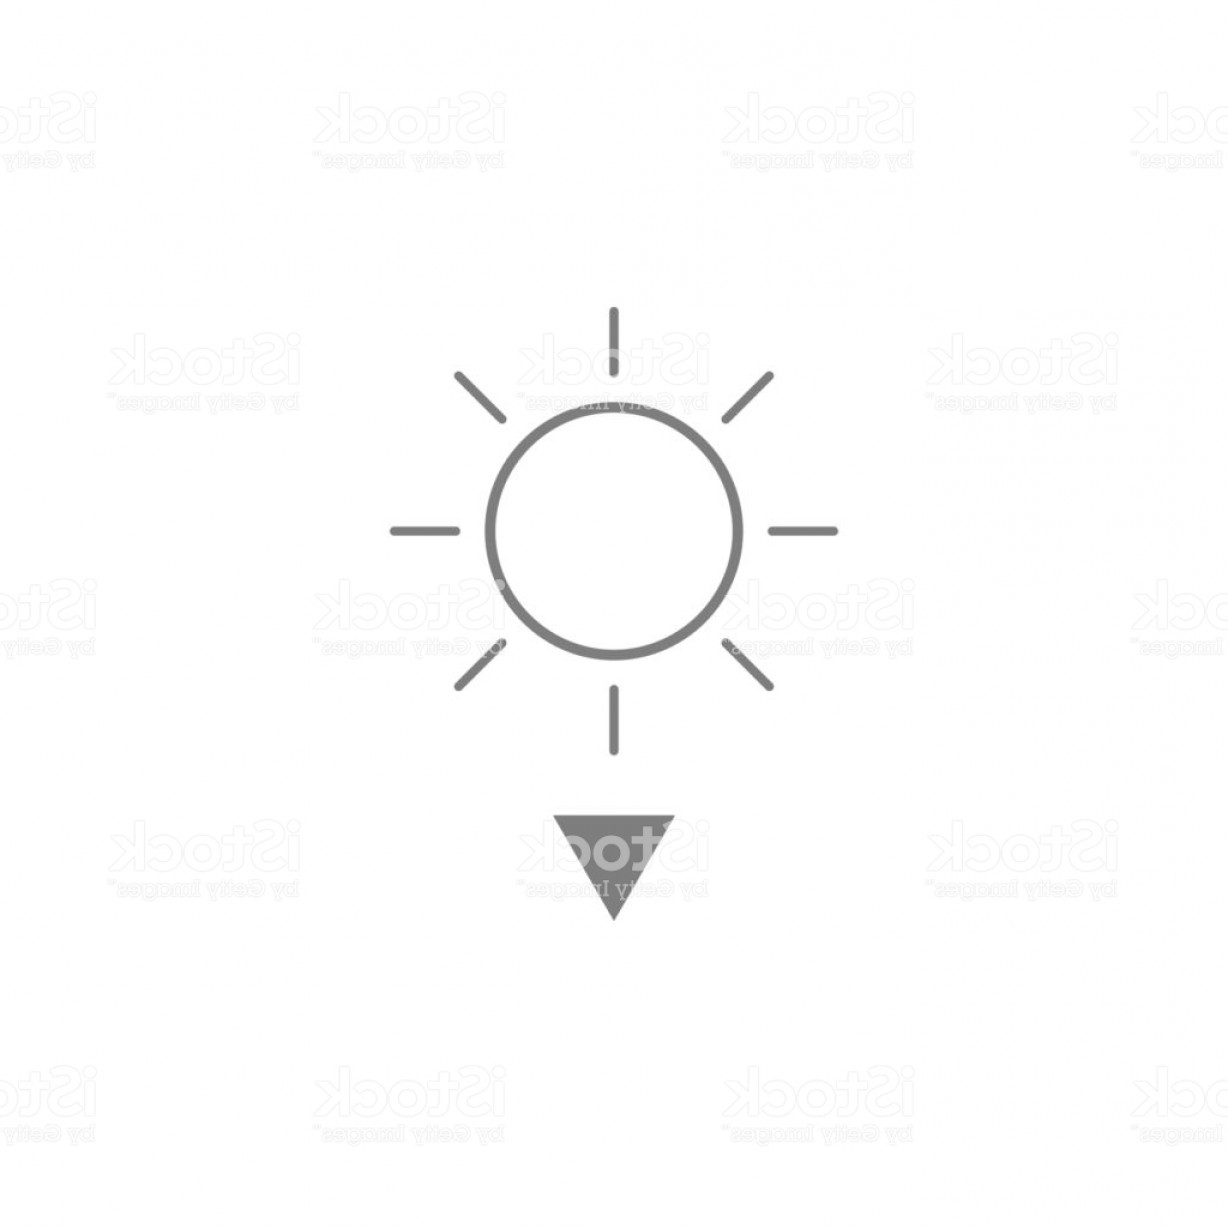 Sunset Black And White Backgrounds Vector: Sunset Vector Icon Black And White Sunset Illustration Solid Linear Icon Gm